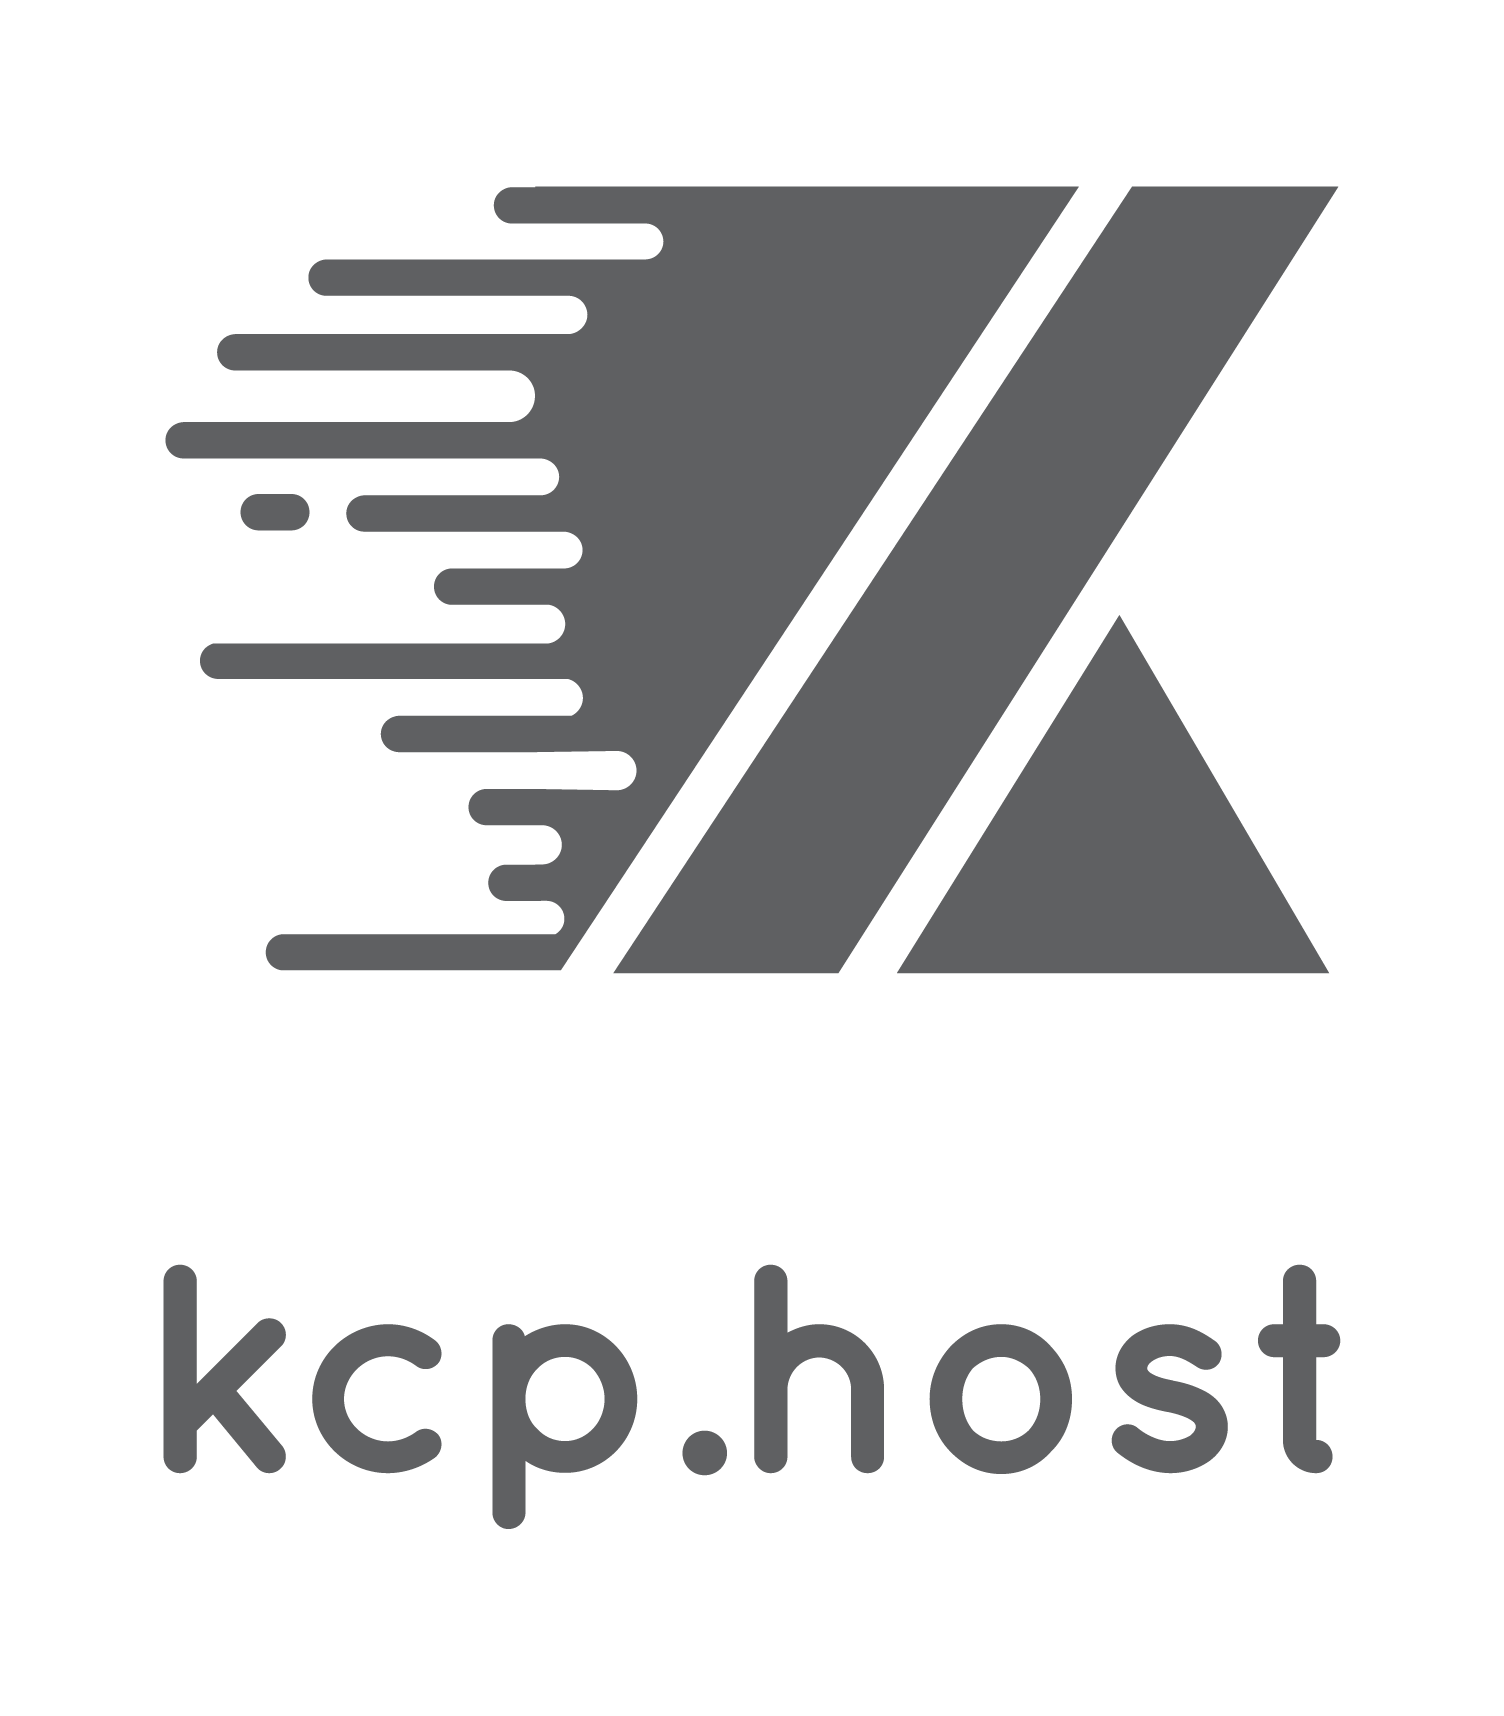 kcp.host